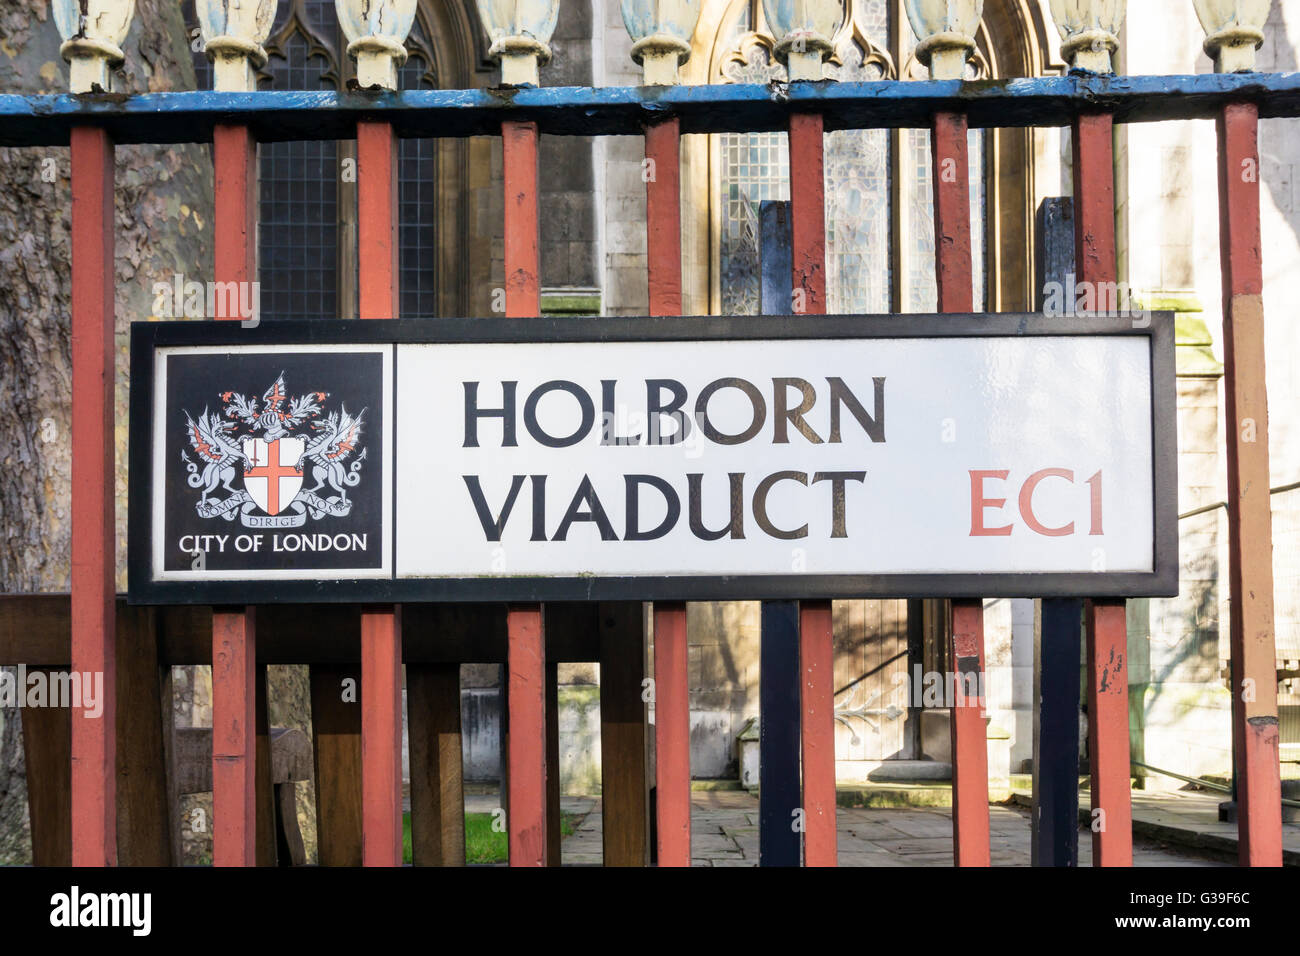 A street sign for Holborn Viaduct in the City of London. - Stock Image